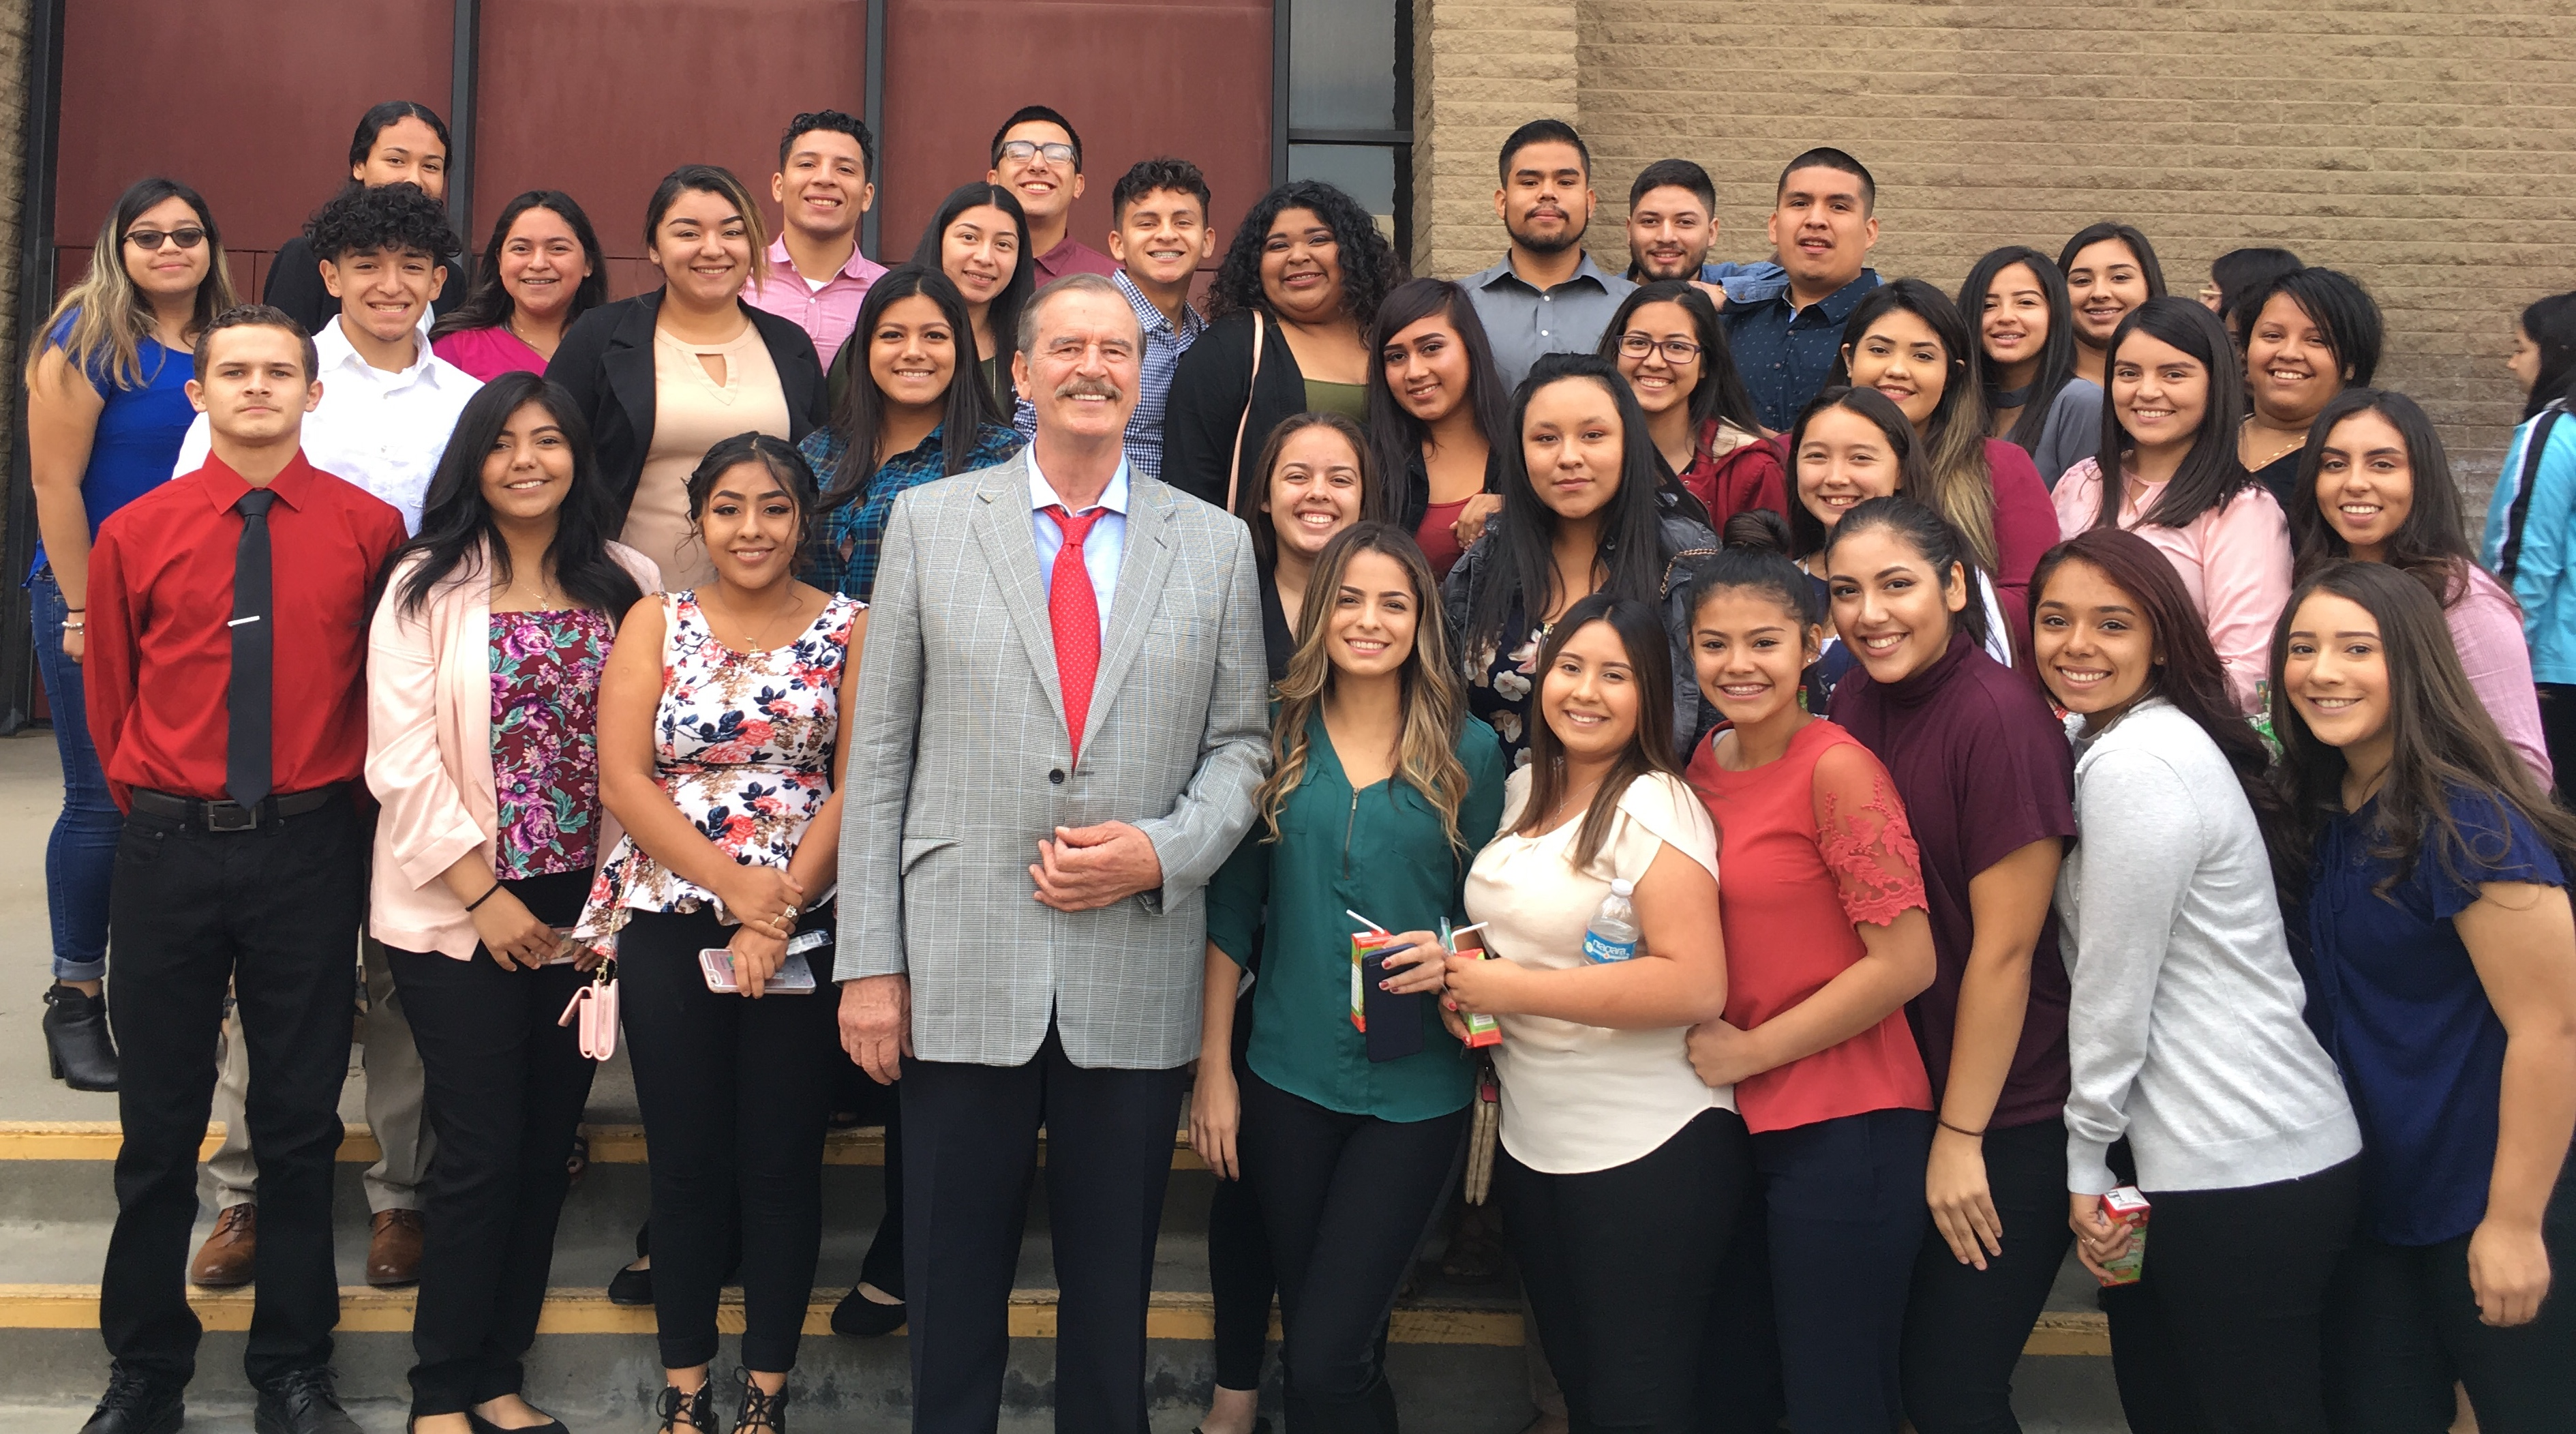 Former Mexican President Vicente Fox met with students from Lindsay High School following his speech. More than 700 students heard the former dignitary's speech.<p></p>